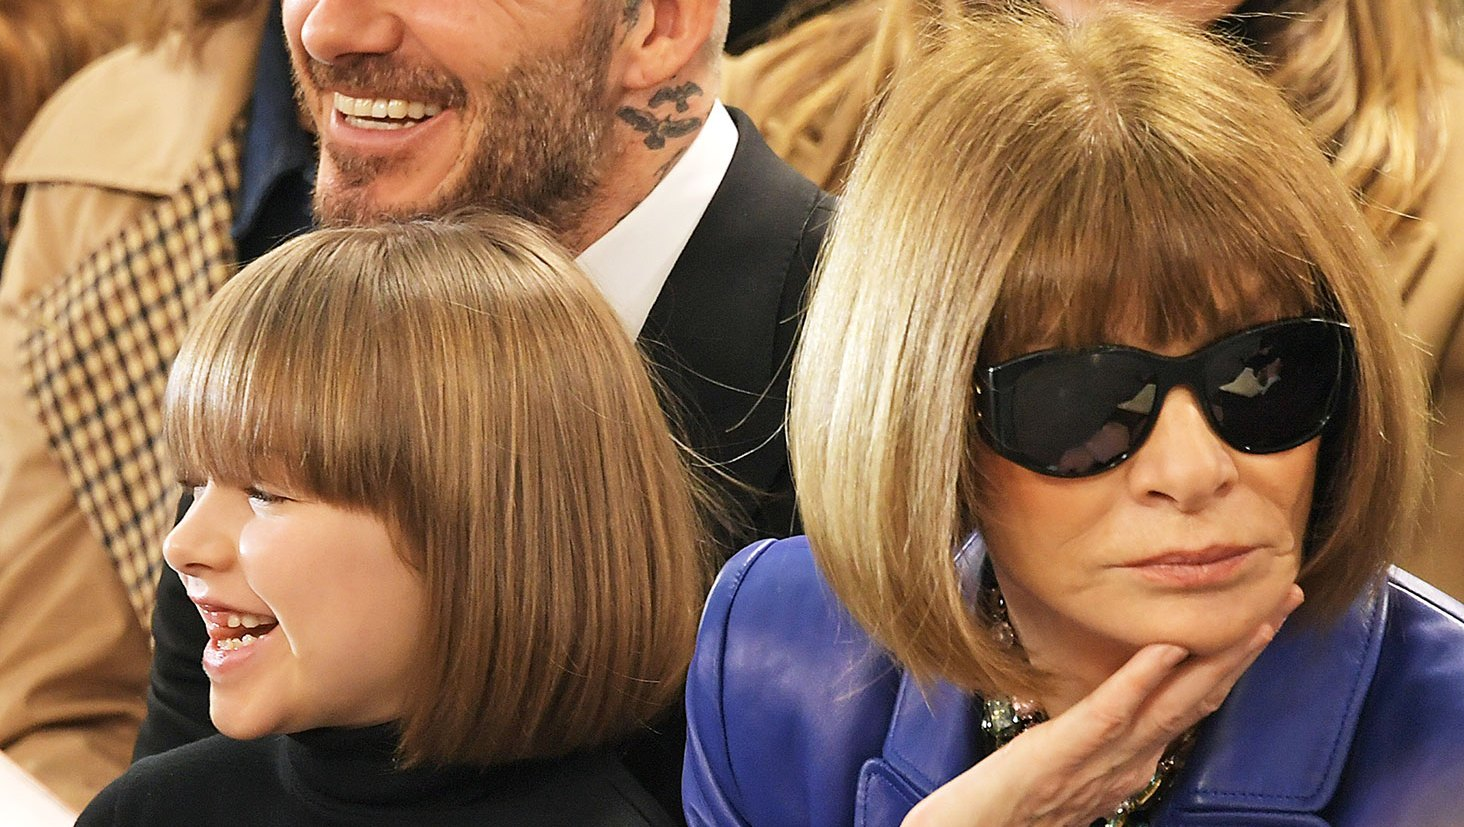 Harper Beckham and Anna Wintour's Twinning Bobs and More Short Hair Inspo